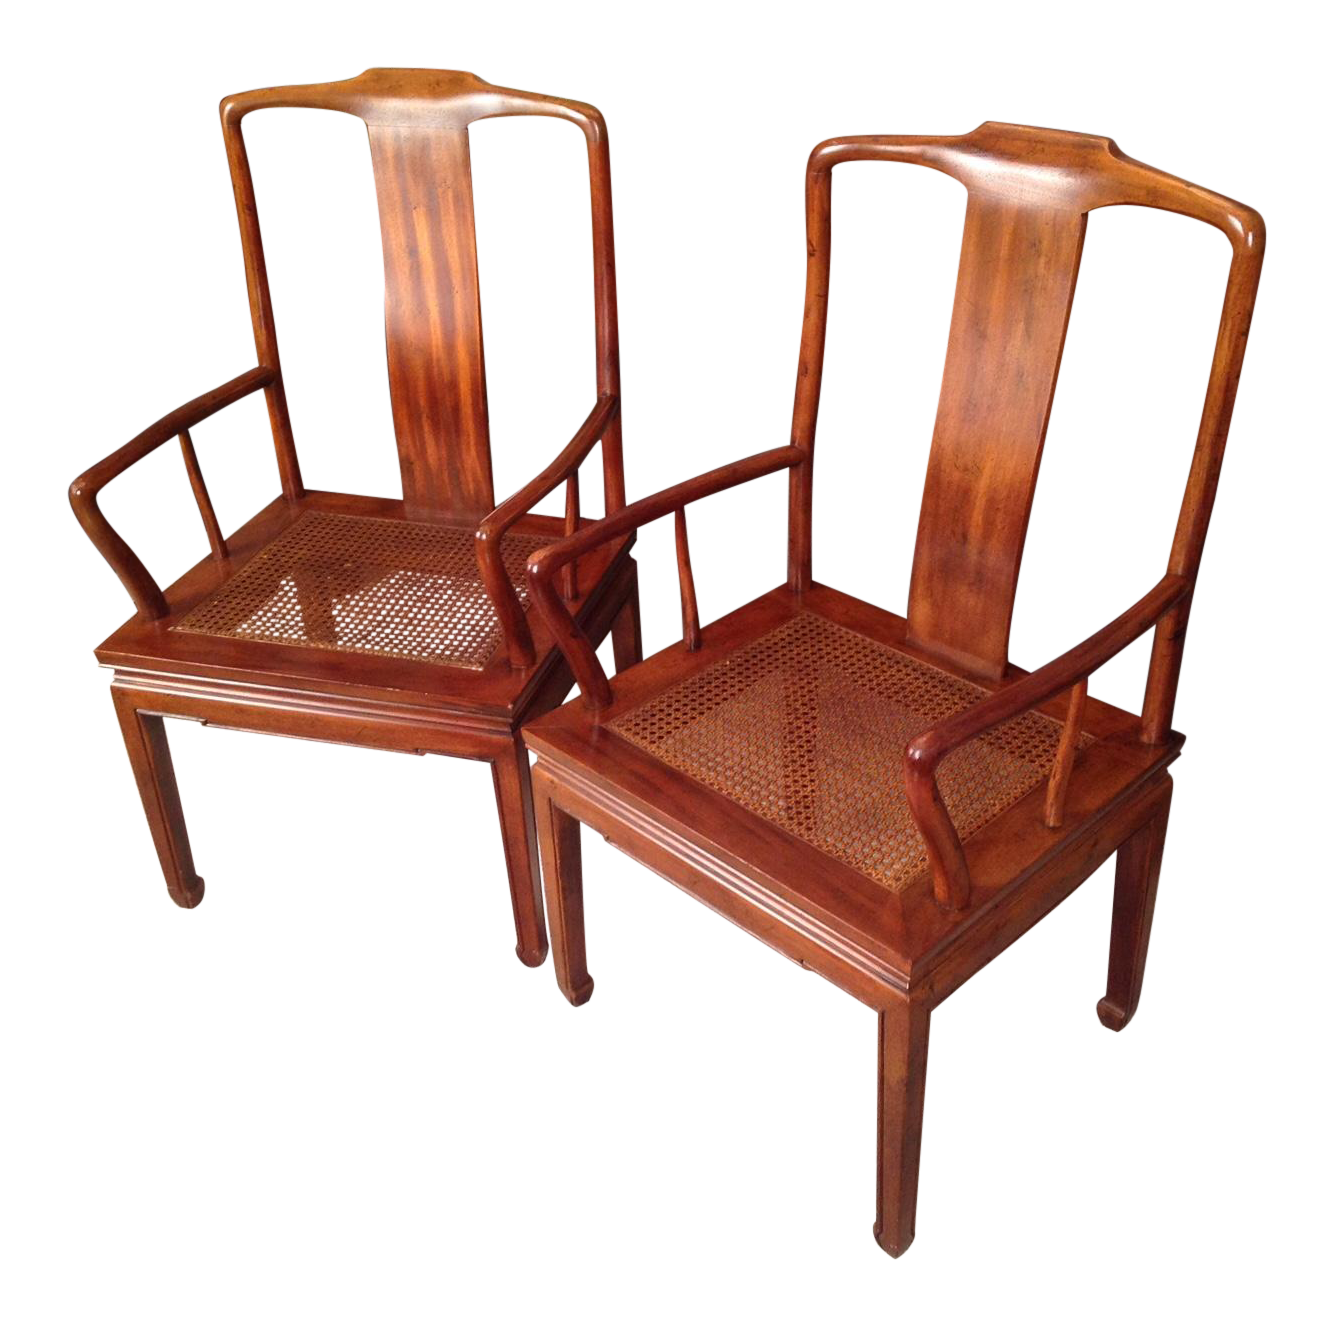 Charmant Henredon Asian Chinese Dining Arm Chairs / Pair   Apartment Therapy  Marketplace Classifieds